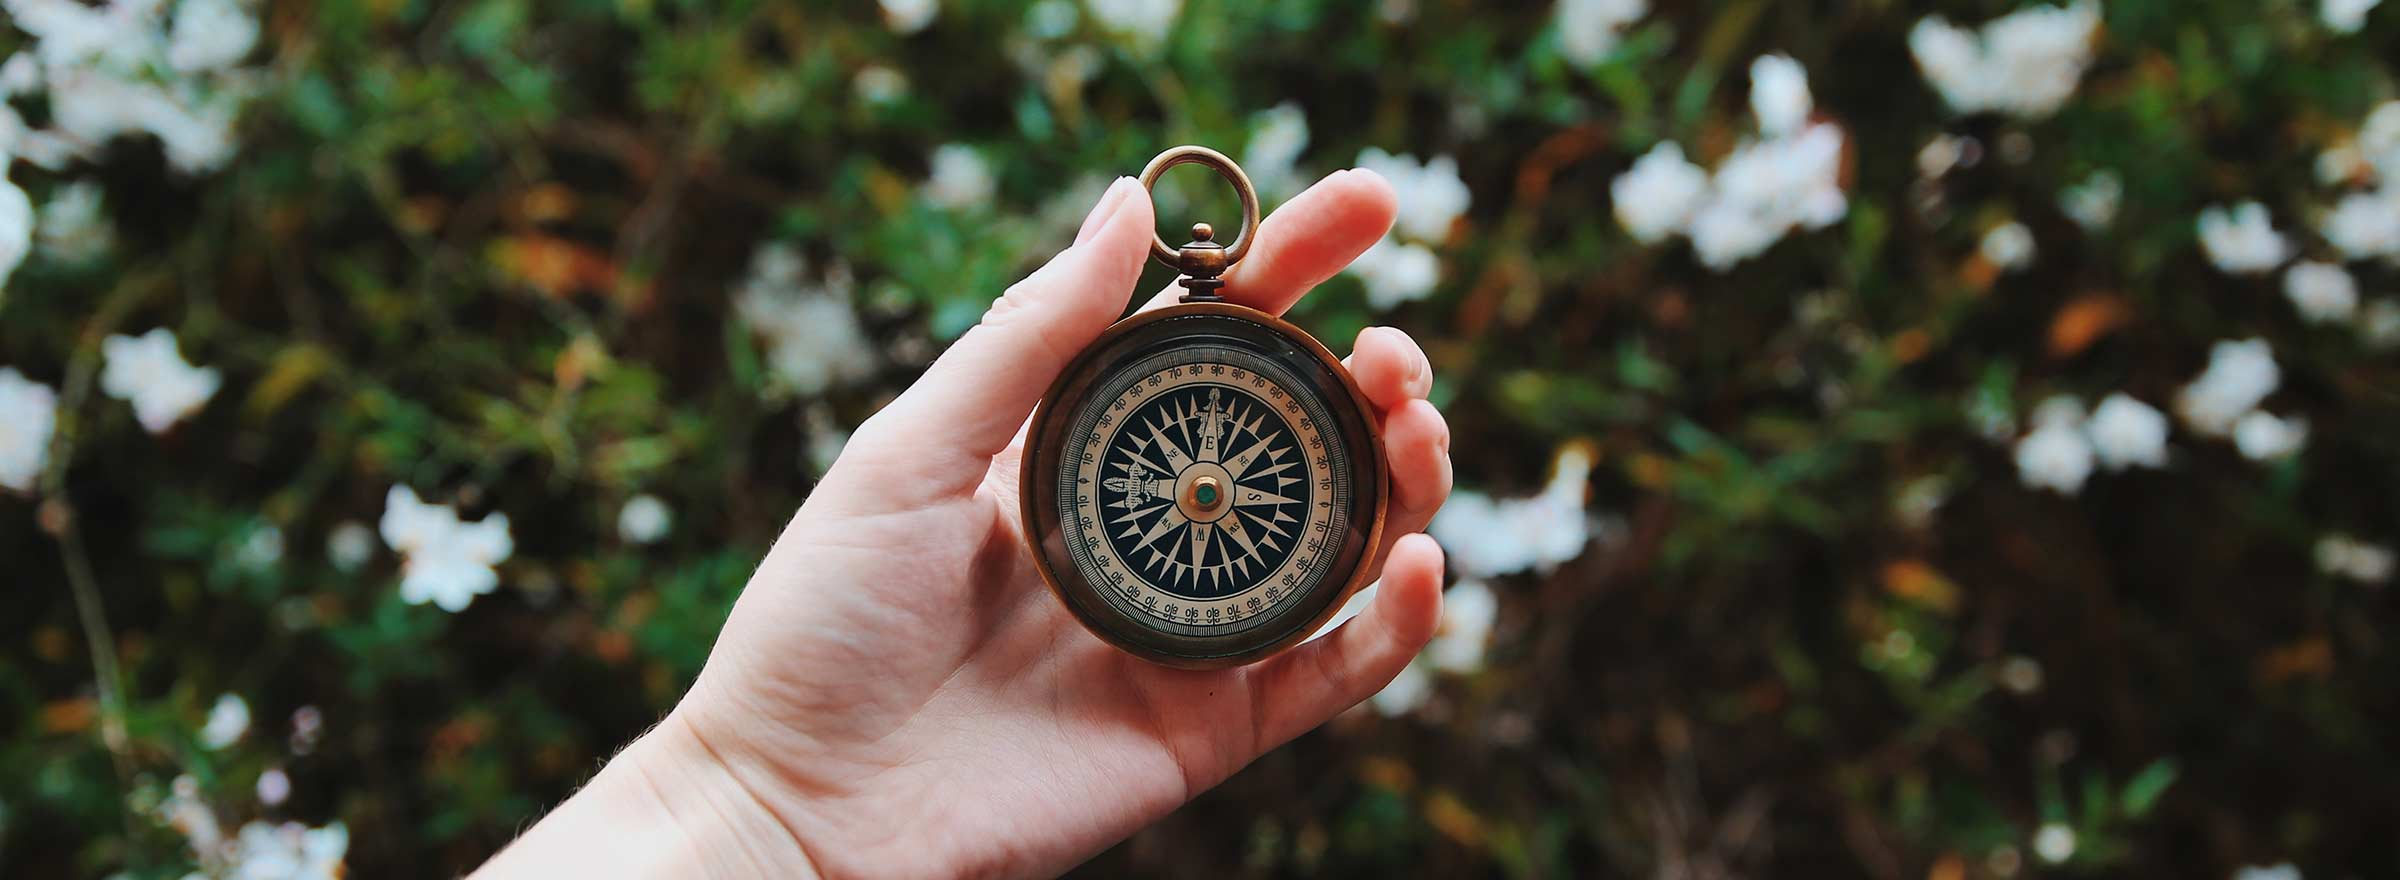 Person holding a compass in hand, representing how online surveys can help guide your nonprofit and measure its impact